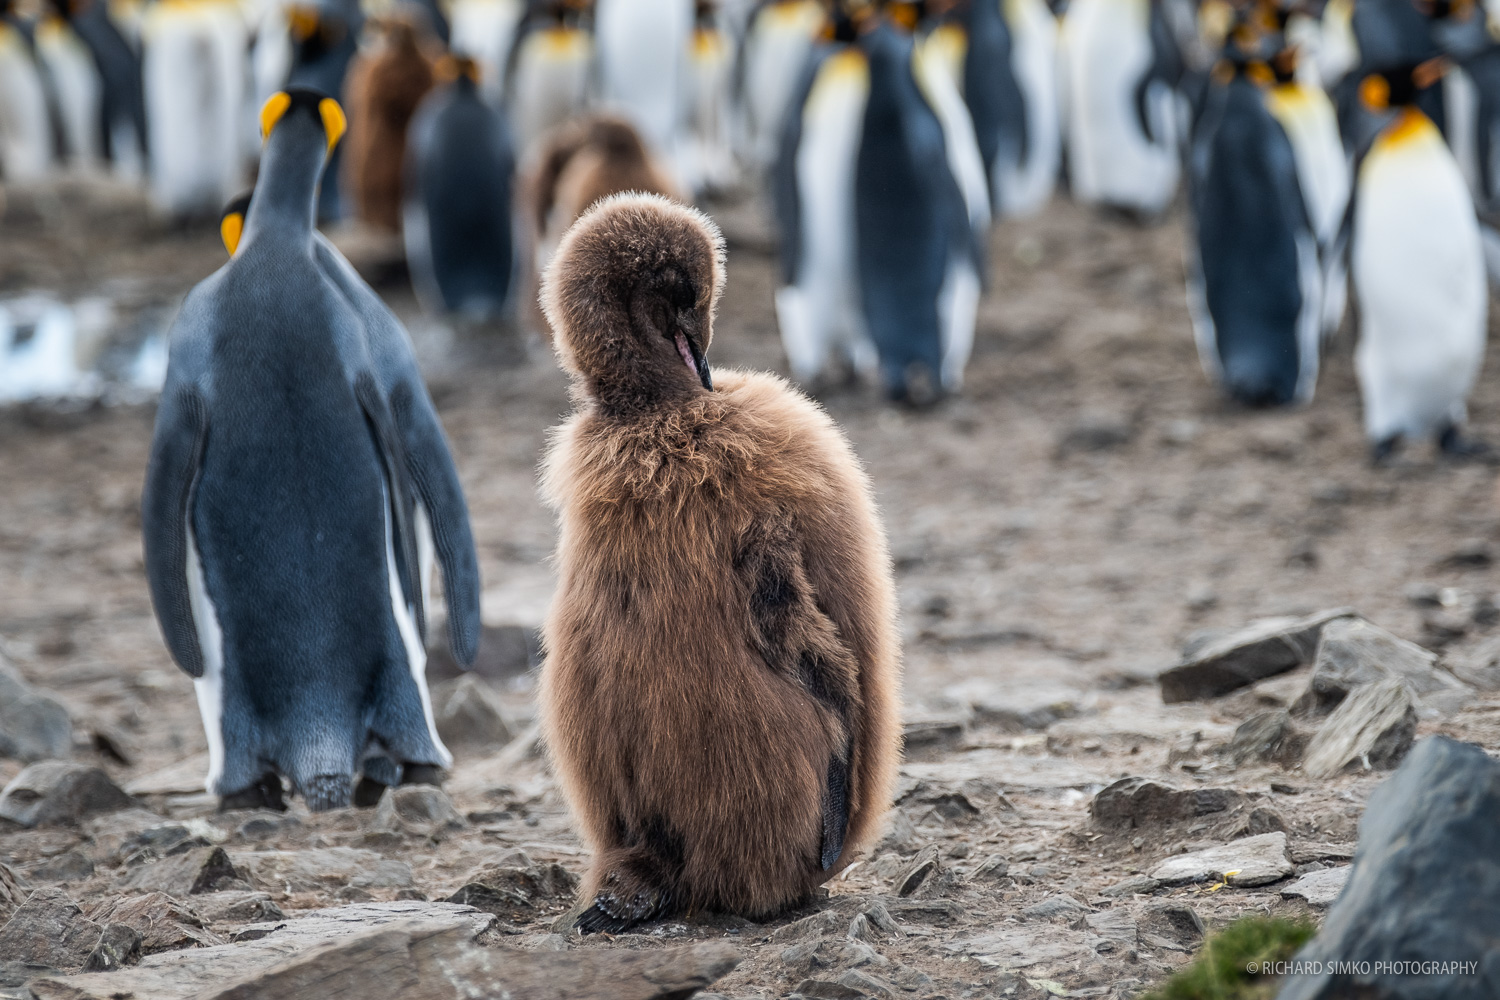 A king penguin chick still with brown feathers that will moult soon and the chick will resemble the natural colors of the species soon.